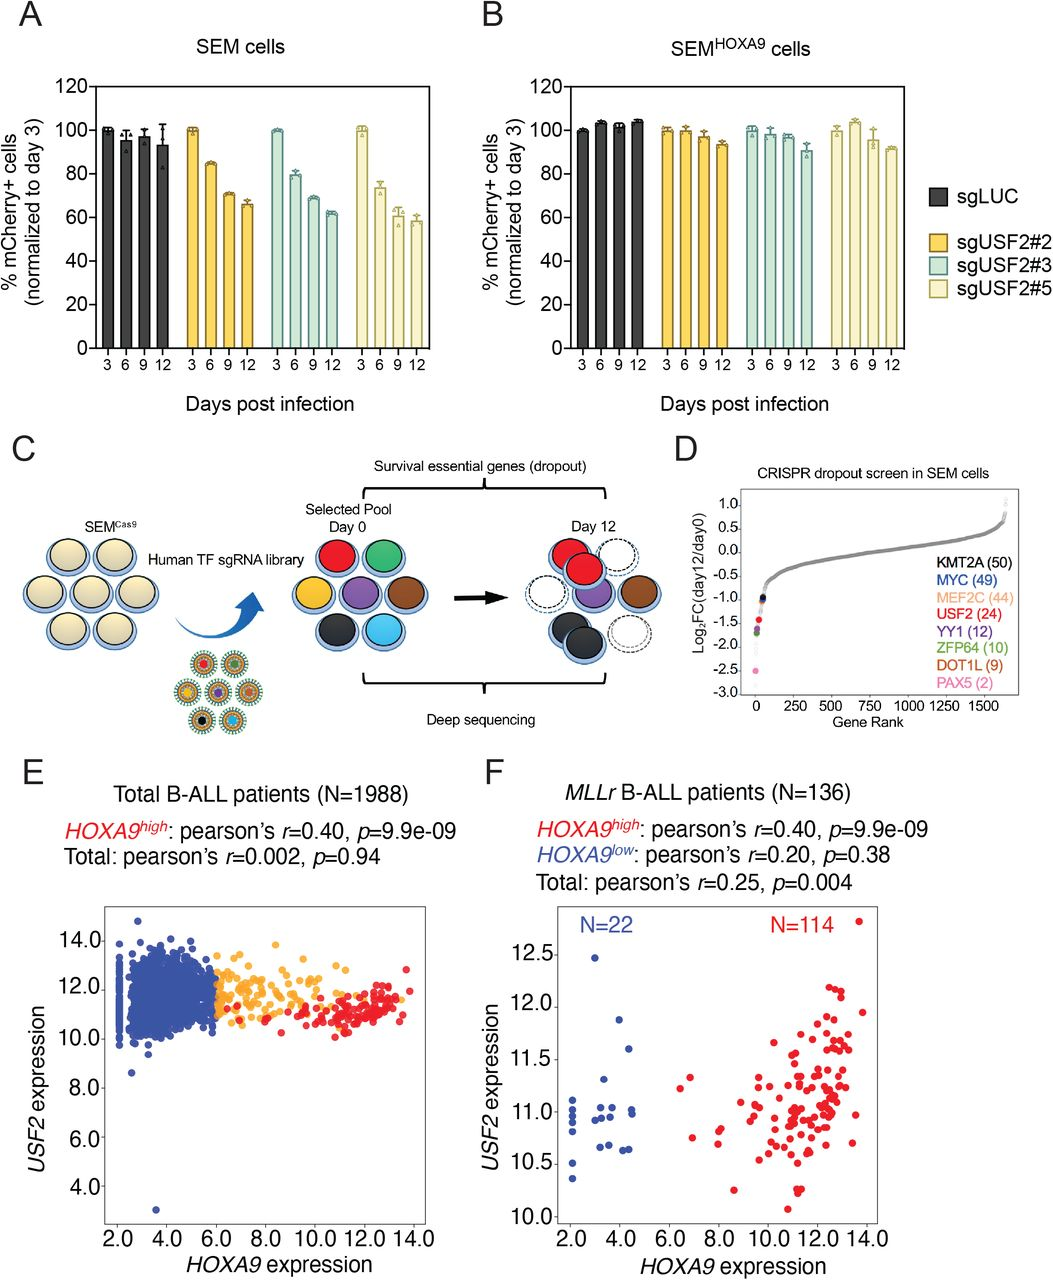 USF2 is a selectively essential gene in MLLr leukemia by controlling HOXA9 expression (A) Competitive proliferation assay was conducted by infecting SEM Cas9 cells with Lentiviral-mCherry-sgRNAs against luciferase (sgLuc) and USF2 (sgUSF 2-2, 2-3 and 2-5) at about 50% efficiency. The mCherry% was quantified every three days by flow cytometry to evaluate the growth disadvantage. The survival essential gene sgRPS19 was included as a positive control. (B) Rescued competitive proliferation assay was conducted by infecting SEM cells overexpressing ectopic HOXA9 with Lentiviral-mCherry-sgRNAs against luciferase (sgLuc) and USF2 (sgUSF2-2, 2-3 and 2-5) at about 50% efficiency. The mCherry% was quantified every three days by flow cytometry to evaluate the growth disadvantage. (C) Flow diagram of dropout CRISPR screening procedure. (D) Gene ranking of all transcription factors from dropout screening was illustrated. The enrichment score of seven sgRNAs against each transcription factor was combined by the MAGeCK algorithm. (E) Pearson's correlation of transcriptional levels of USF2 and HOXA9 in a cohort of 1,988 B-ALL patients ( 26 ). (F) Pearson's correlation of transcriptional levels of USF2 and HOXA9 in a cohort of 136 MLLr B-ALL subtype patients.